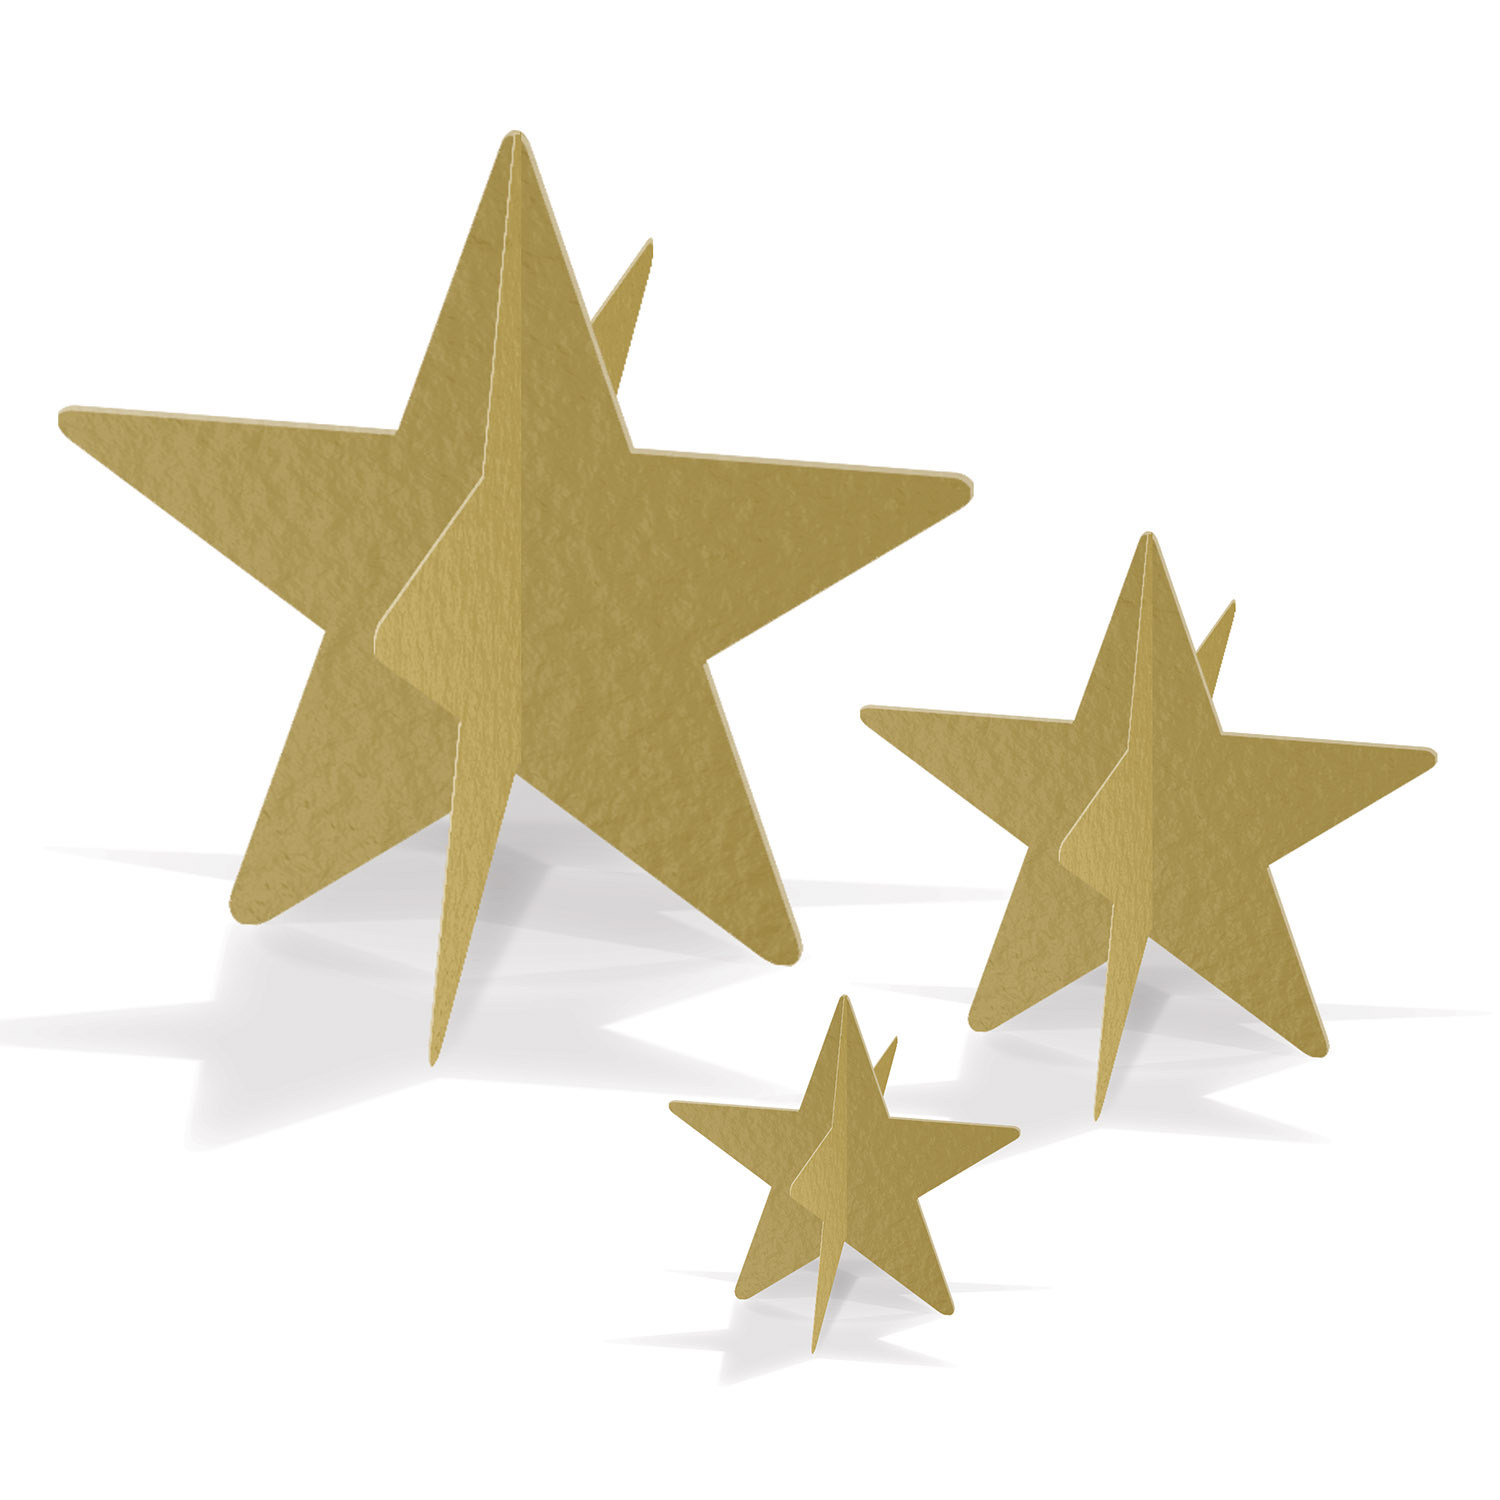 3-D gold foil star table centerpieces in a small, medium, and large size